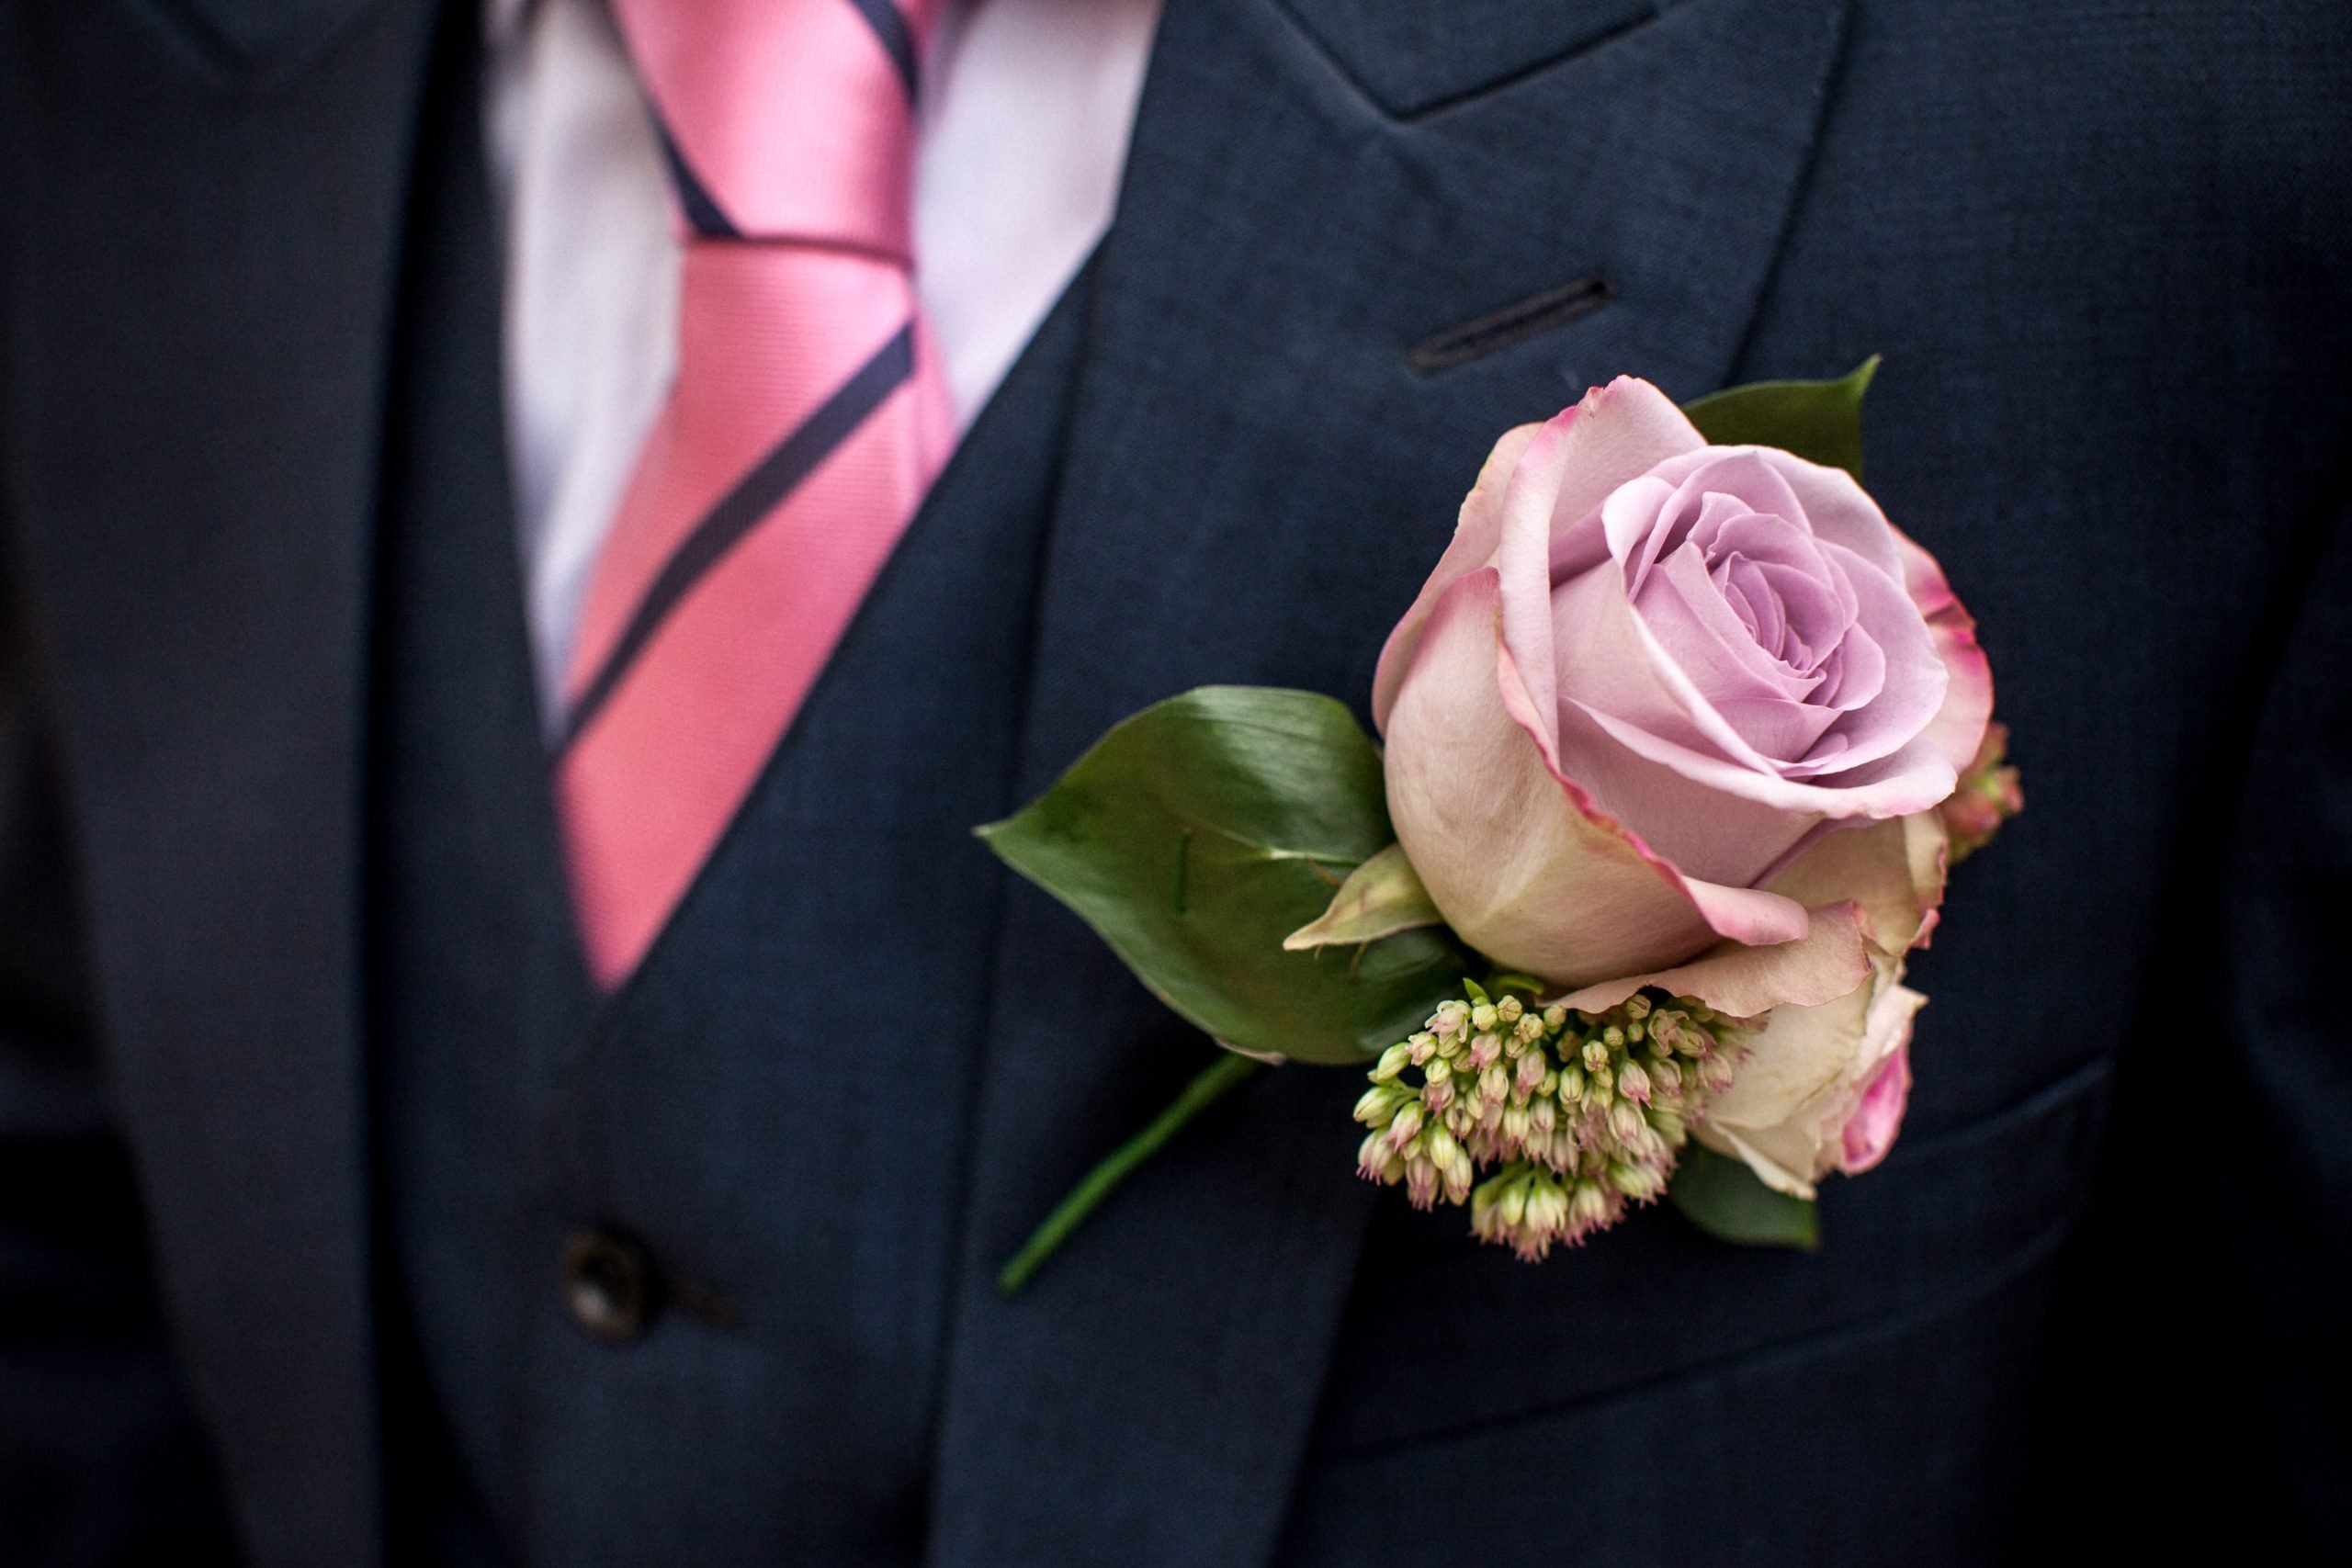 Grooms buttonhole, memory lane rose with snowberries